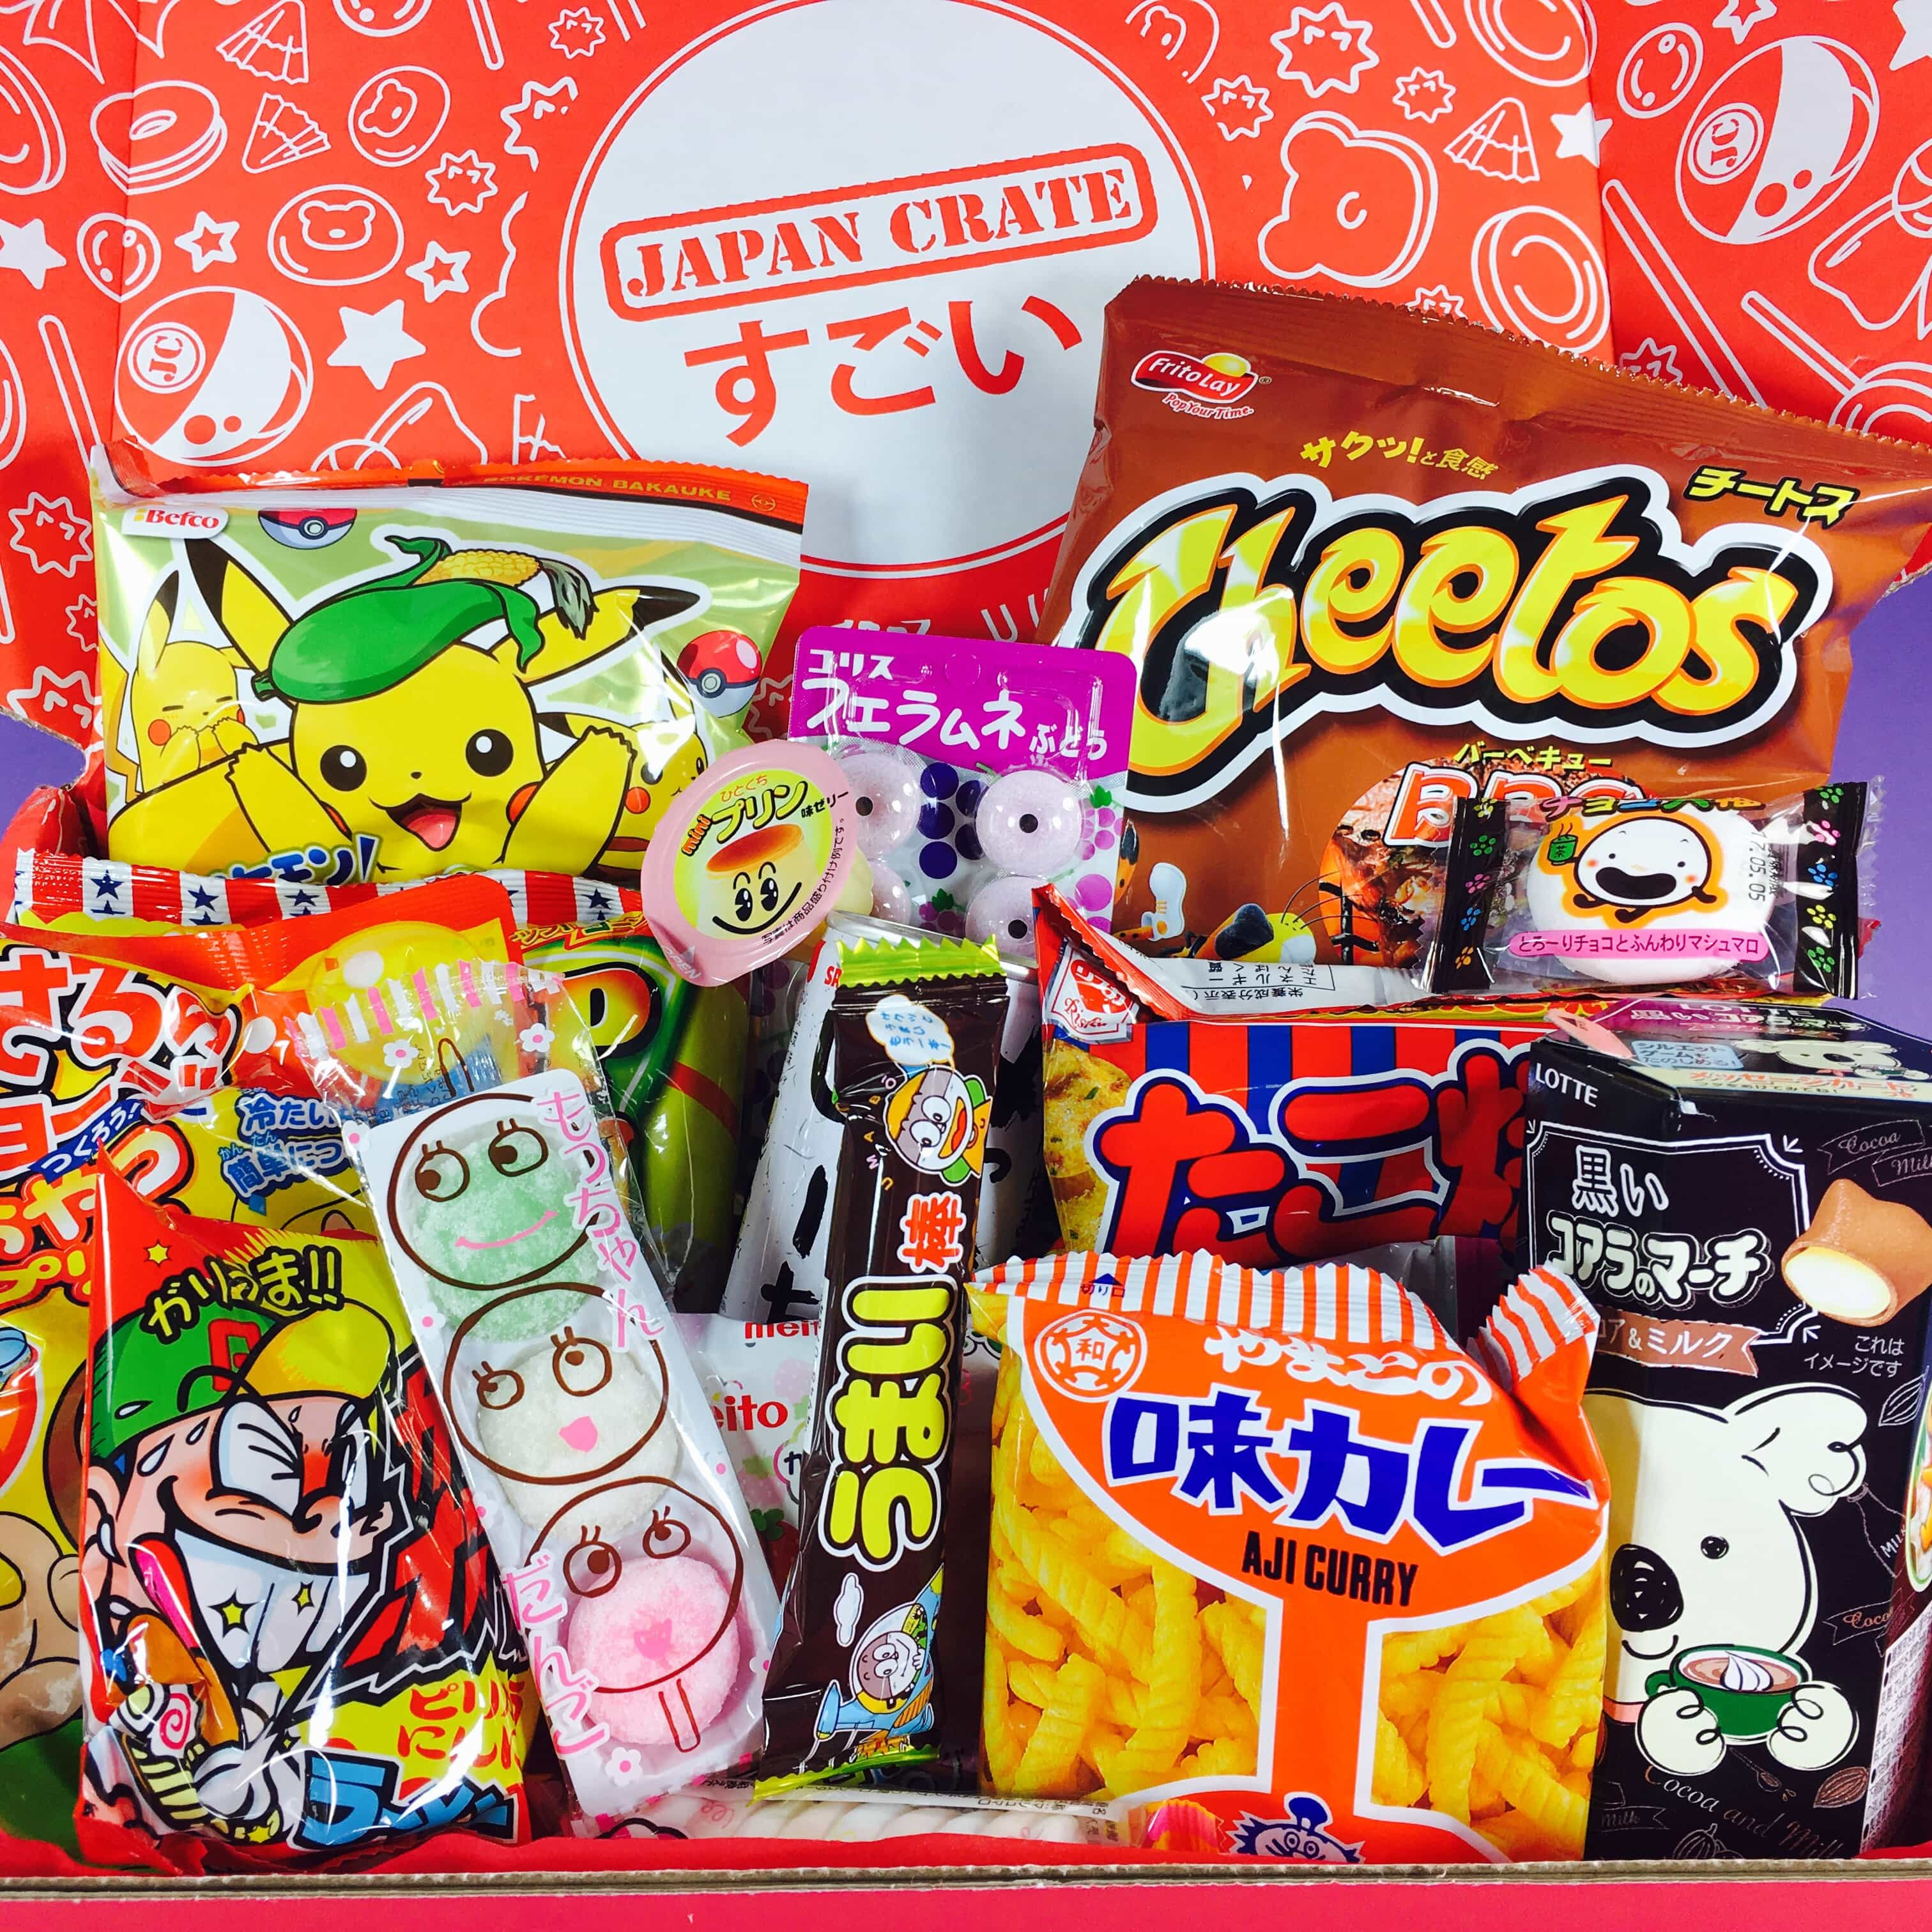 Japan Crate February 2017 Subscription Box Review + Coupon